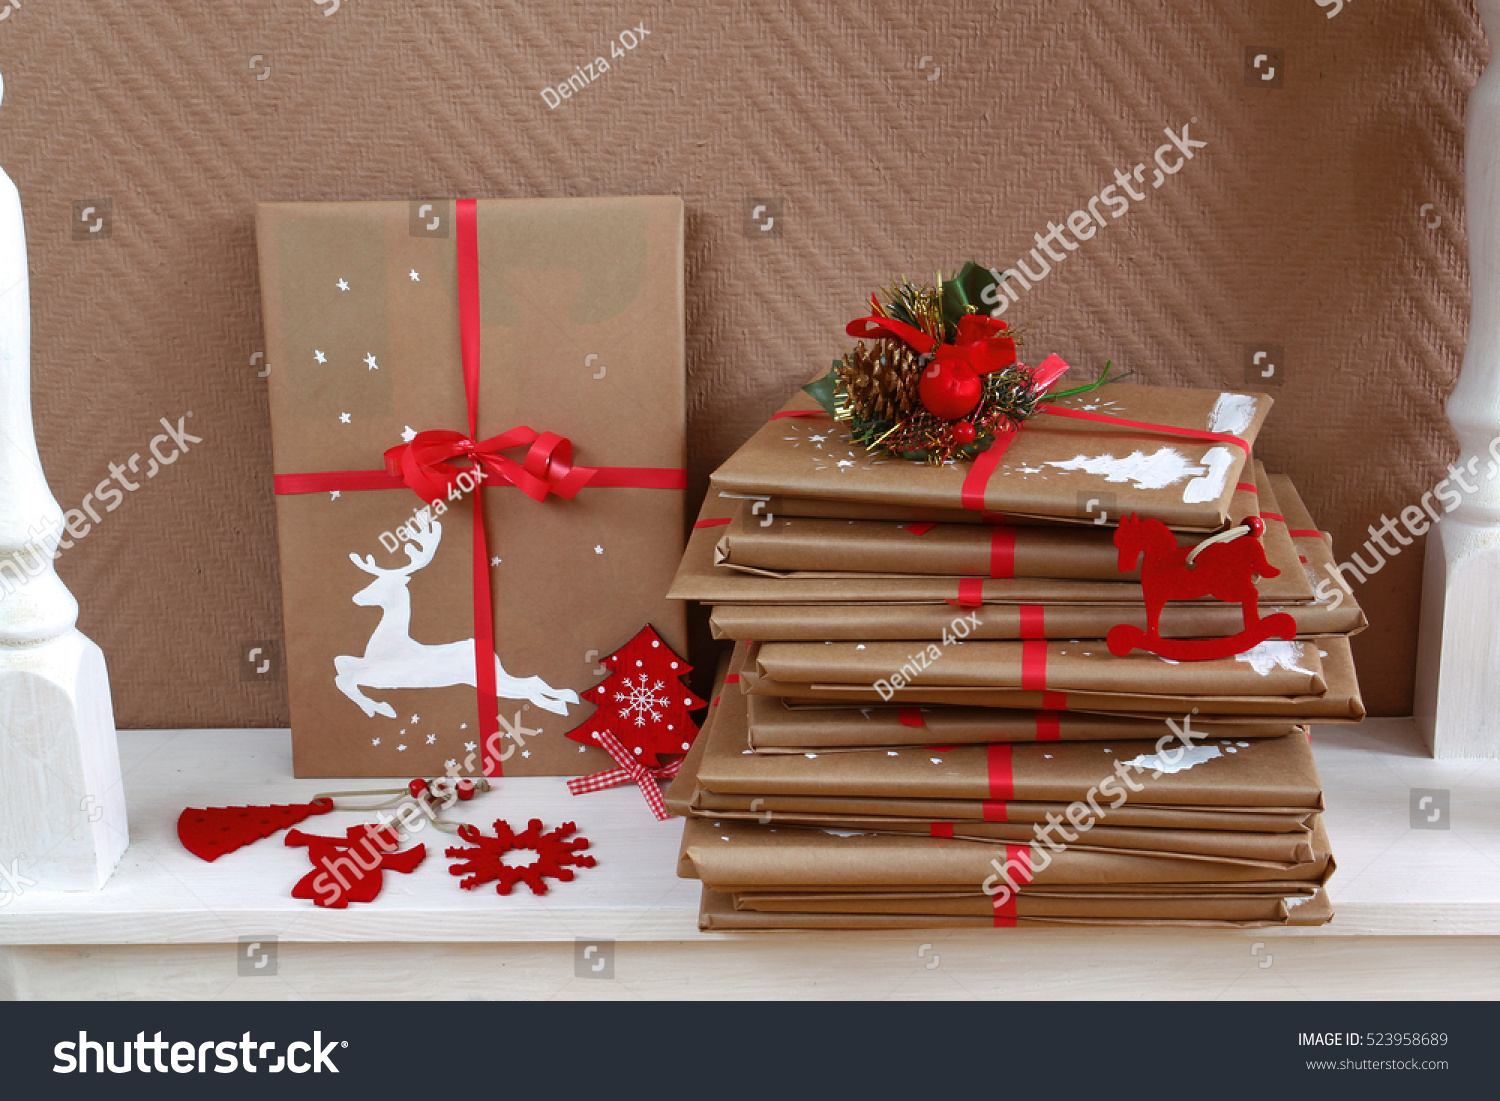 Many Books Christmas Gifts Wrapped Homemade Stock Photo (Edit Now ...